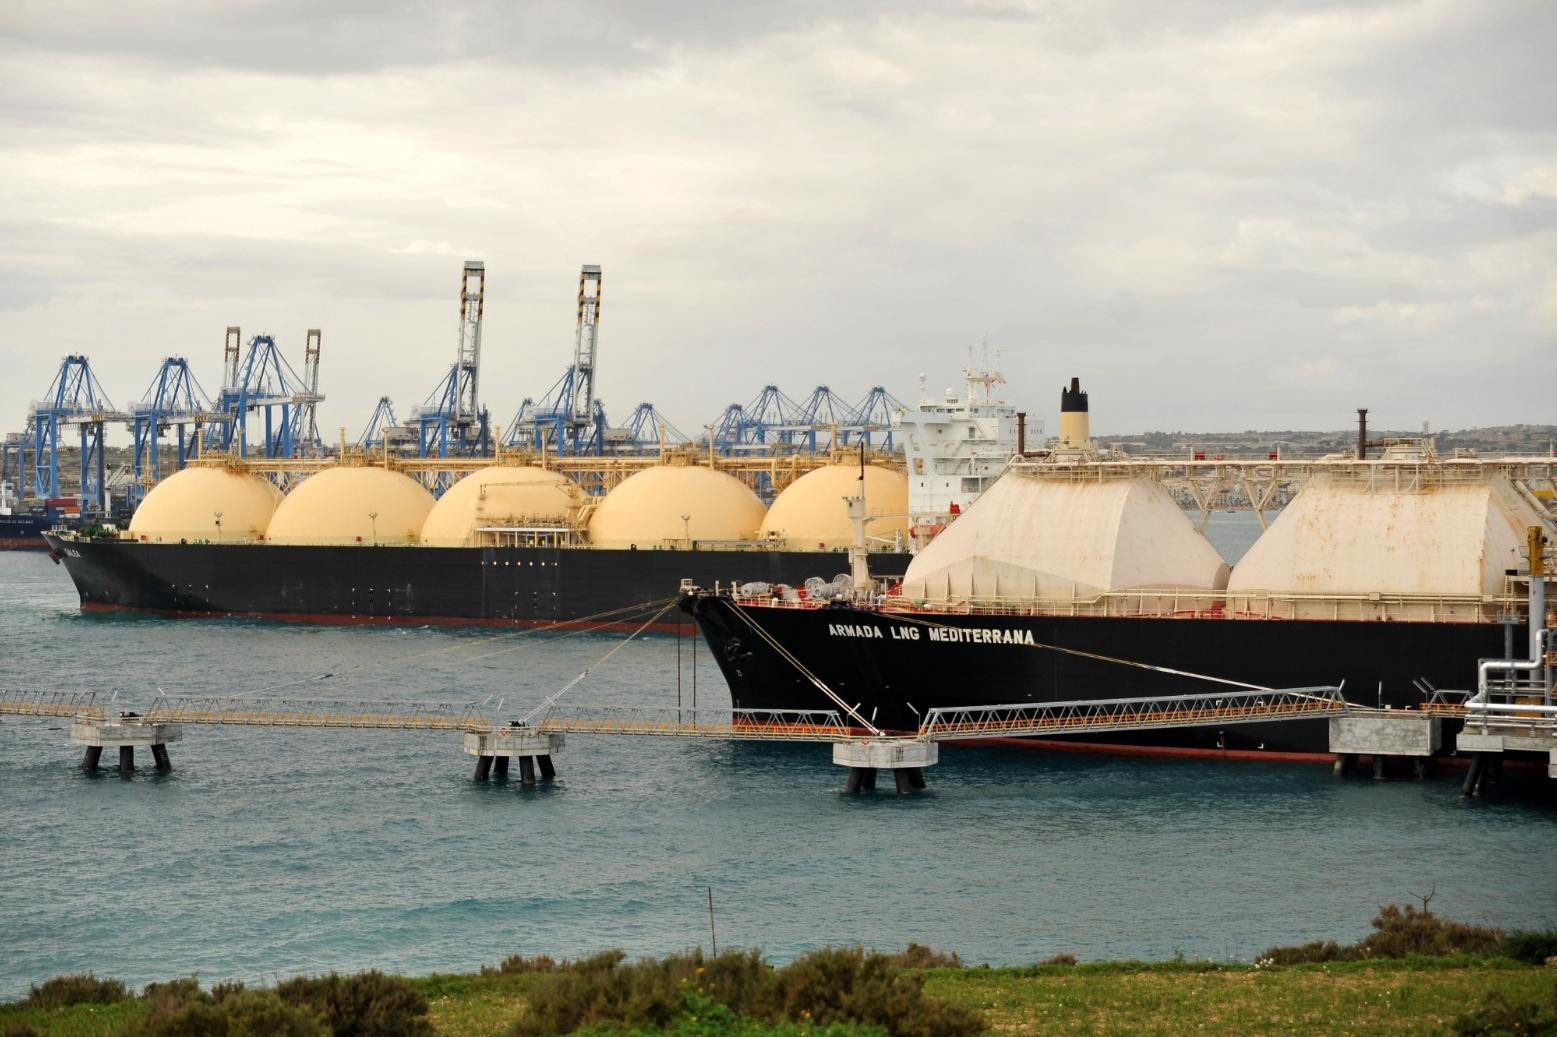 The LNG tanker that is used to fuel the gas-fired Electrogas power station. Photo: Chris Sant Fournier